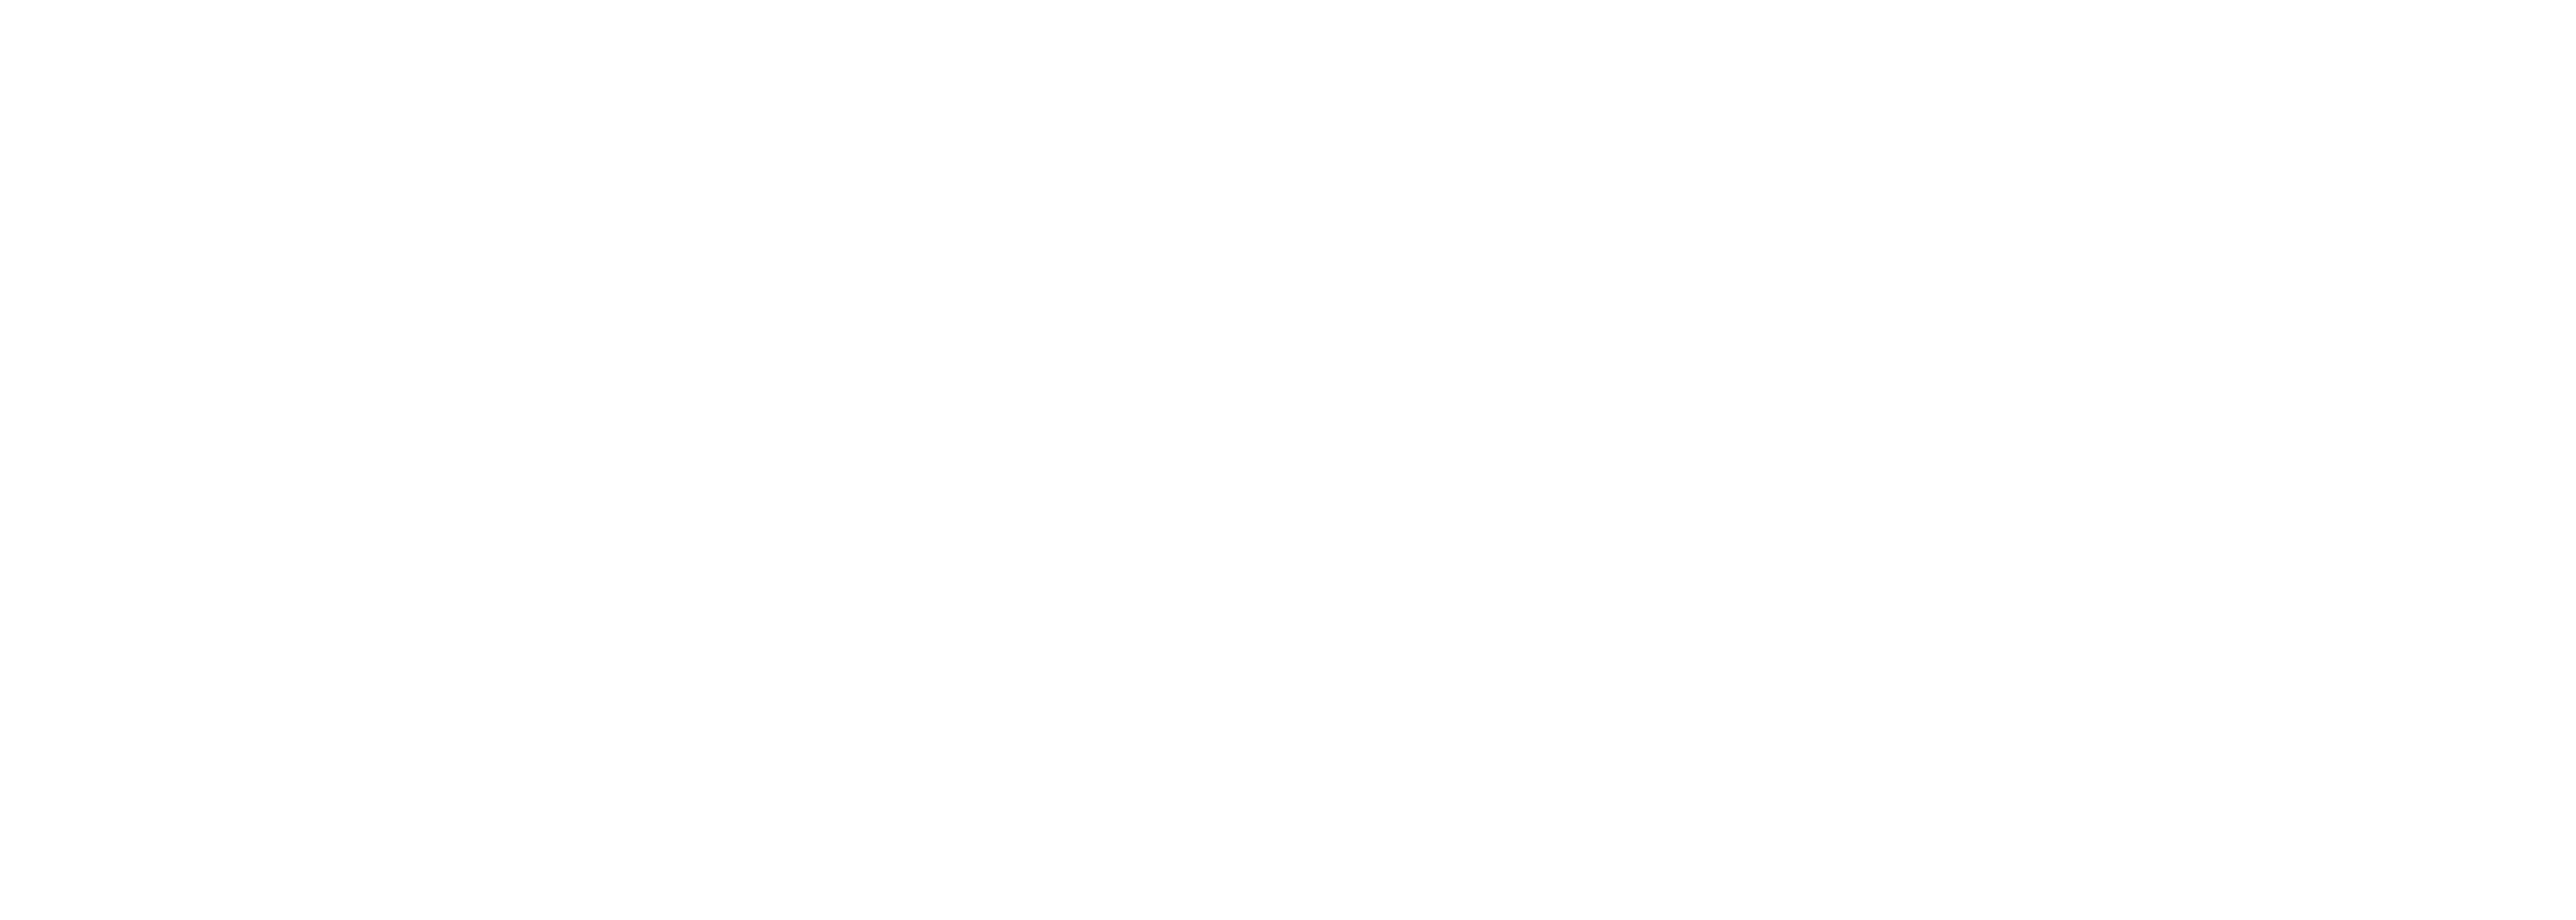 marquis-01-23-21-slider2.png